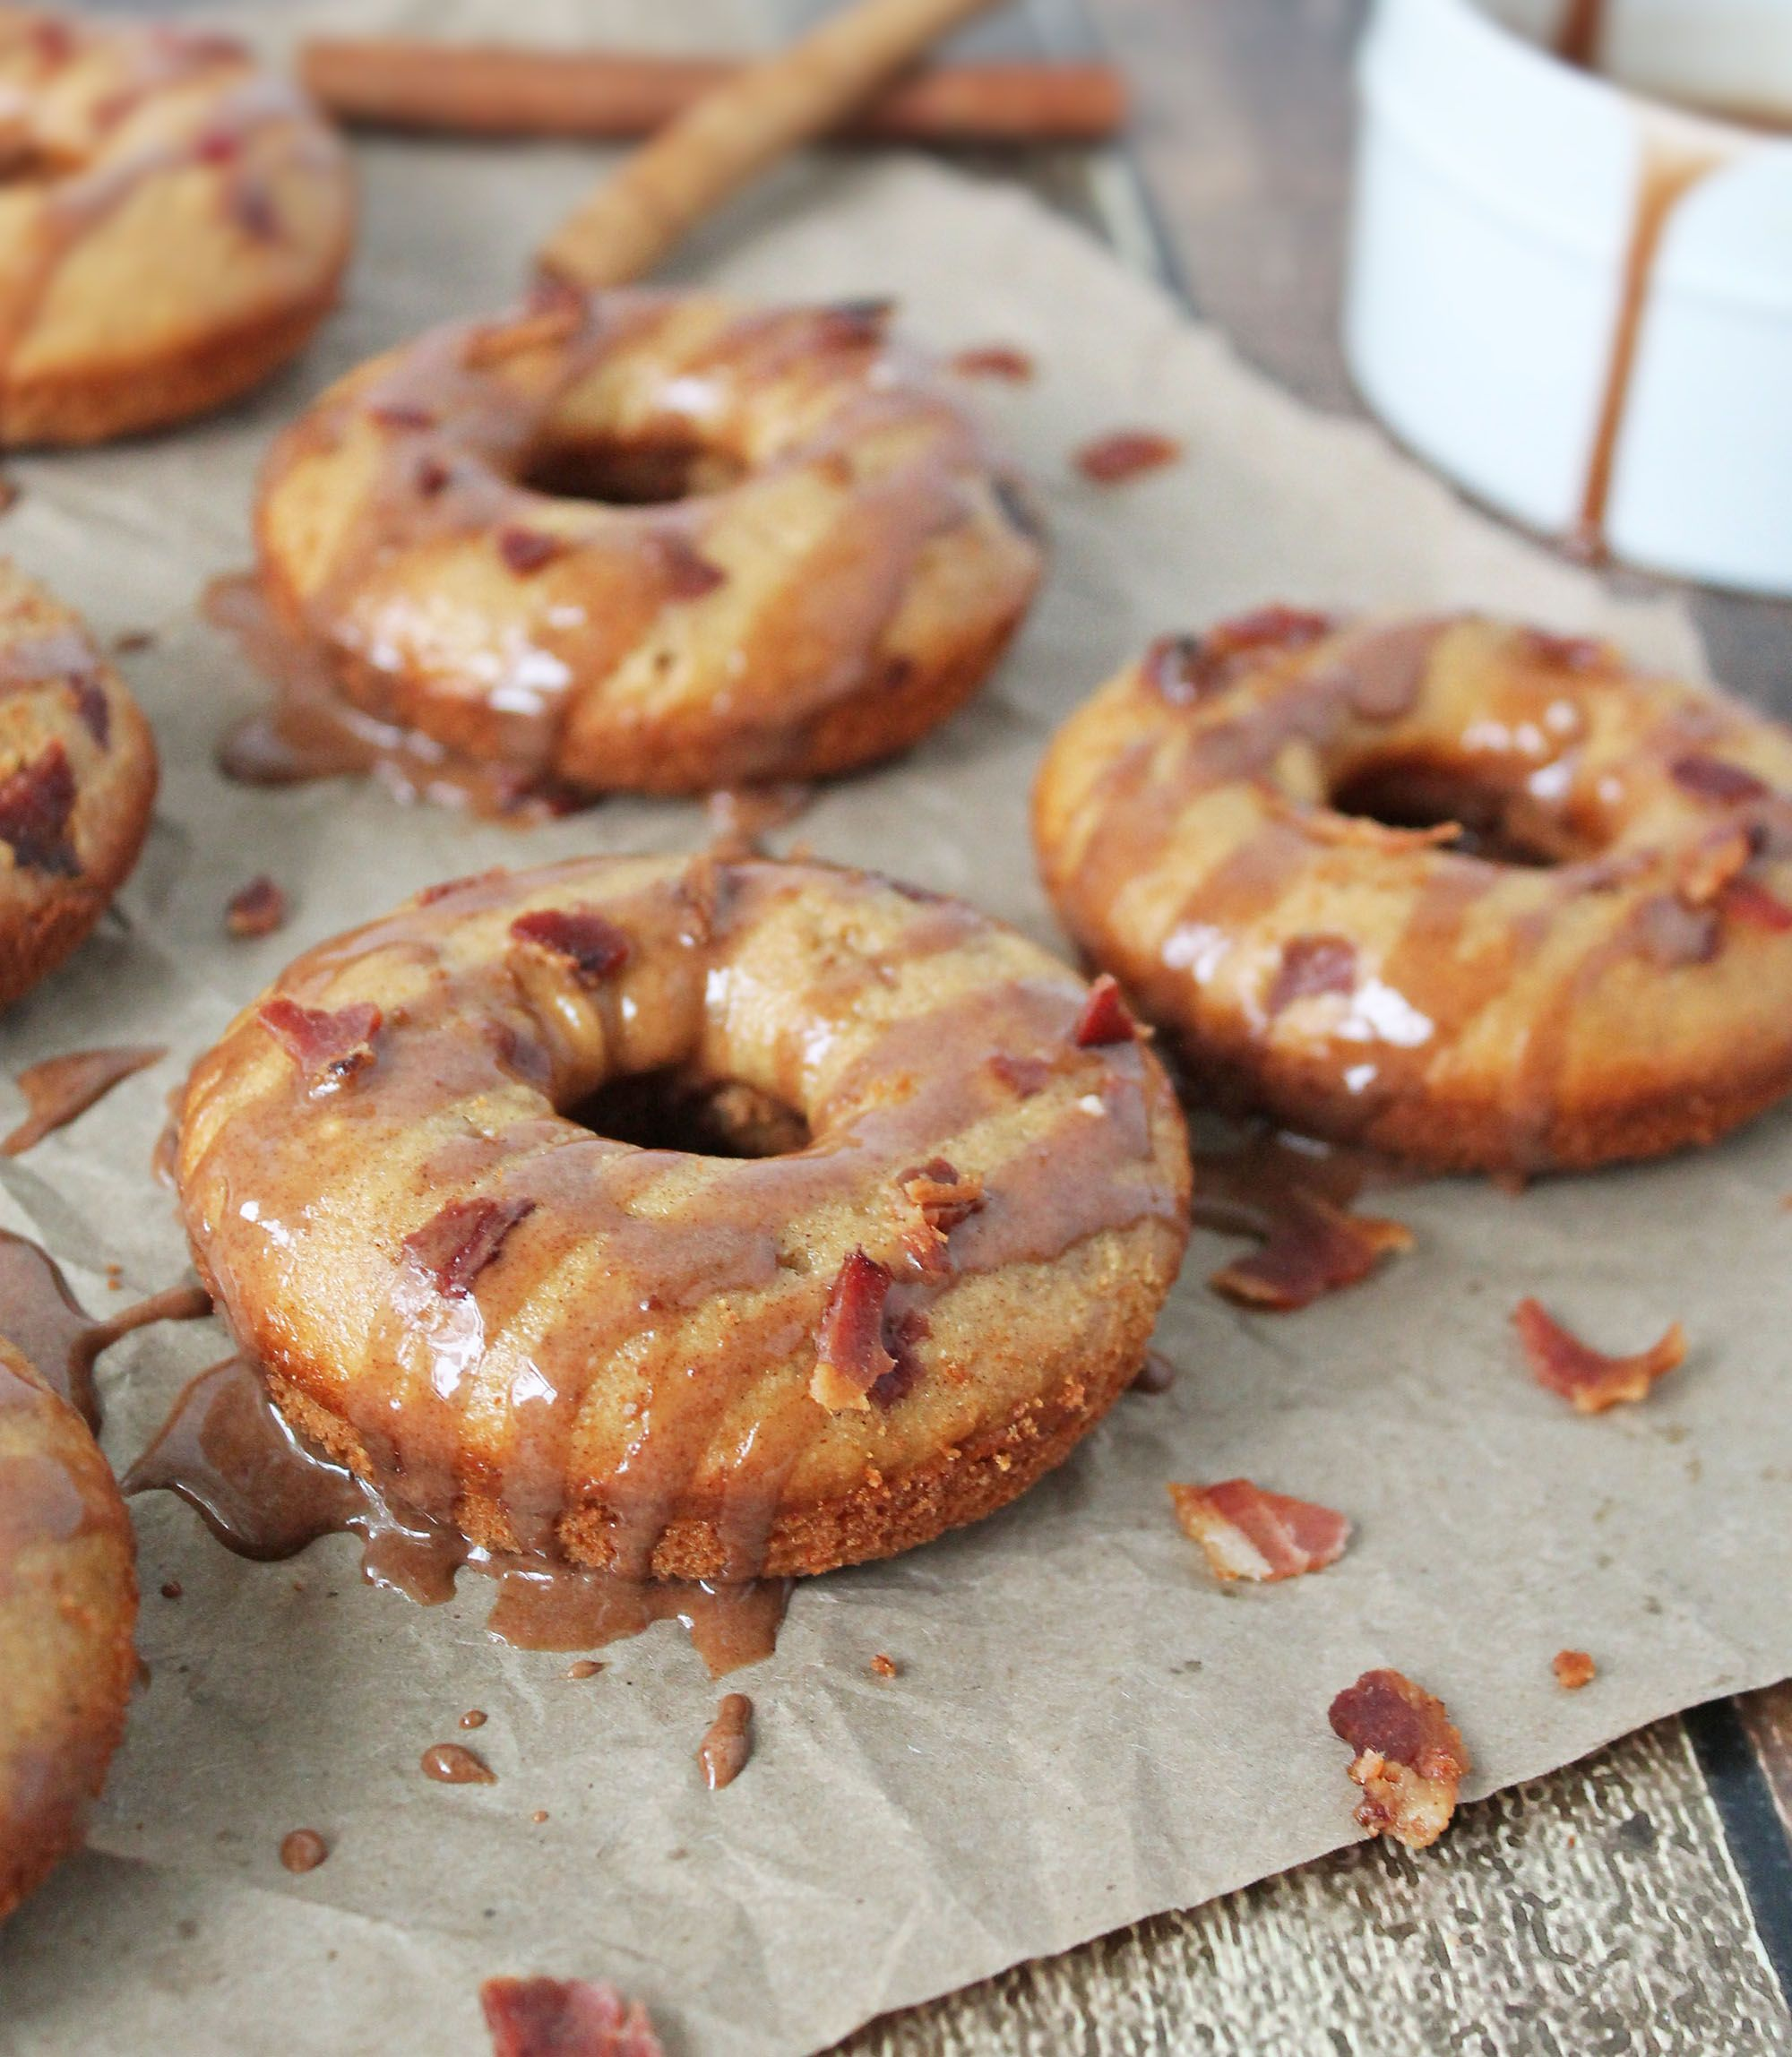 Cinnamon bacon doughnuts gluten free and baked with